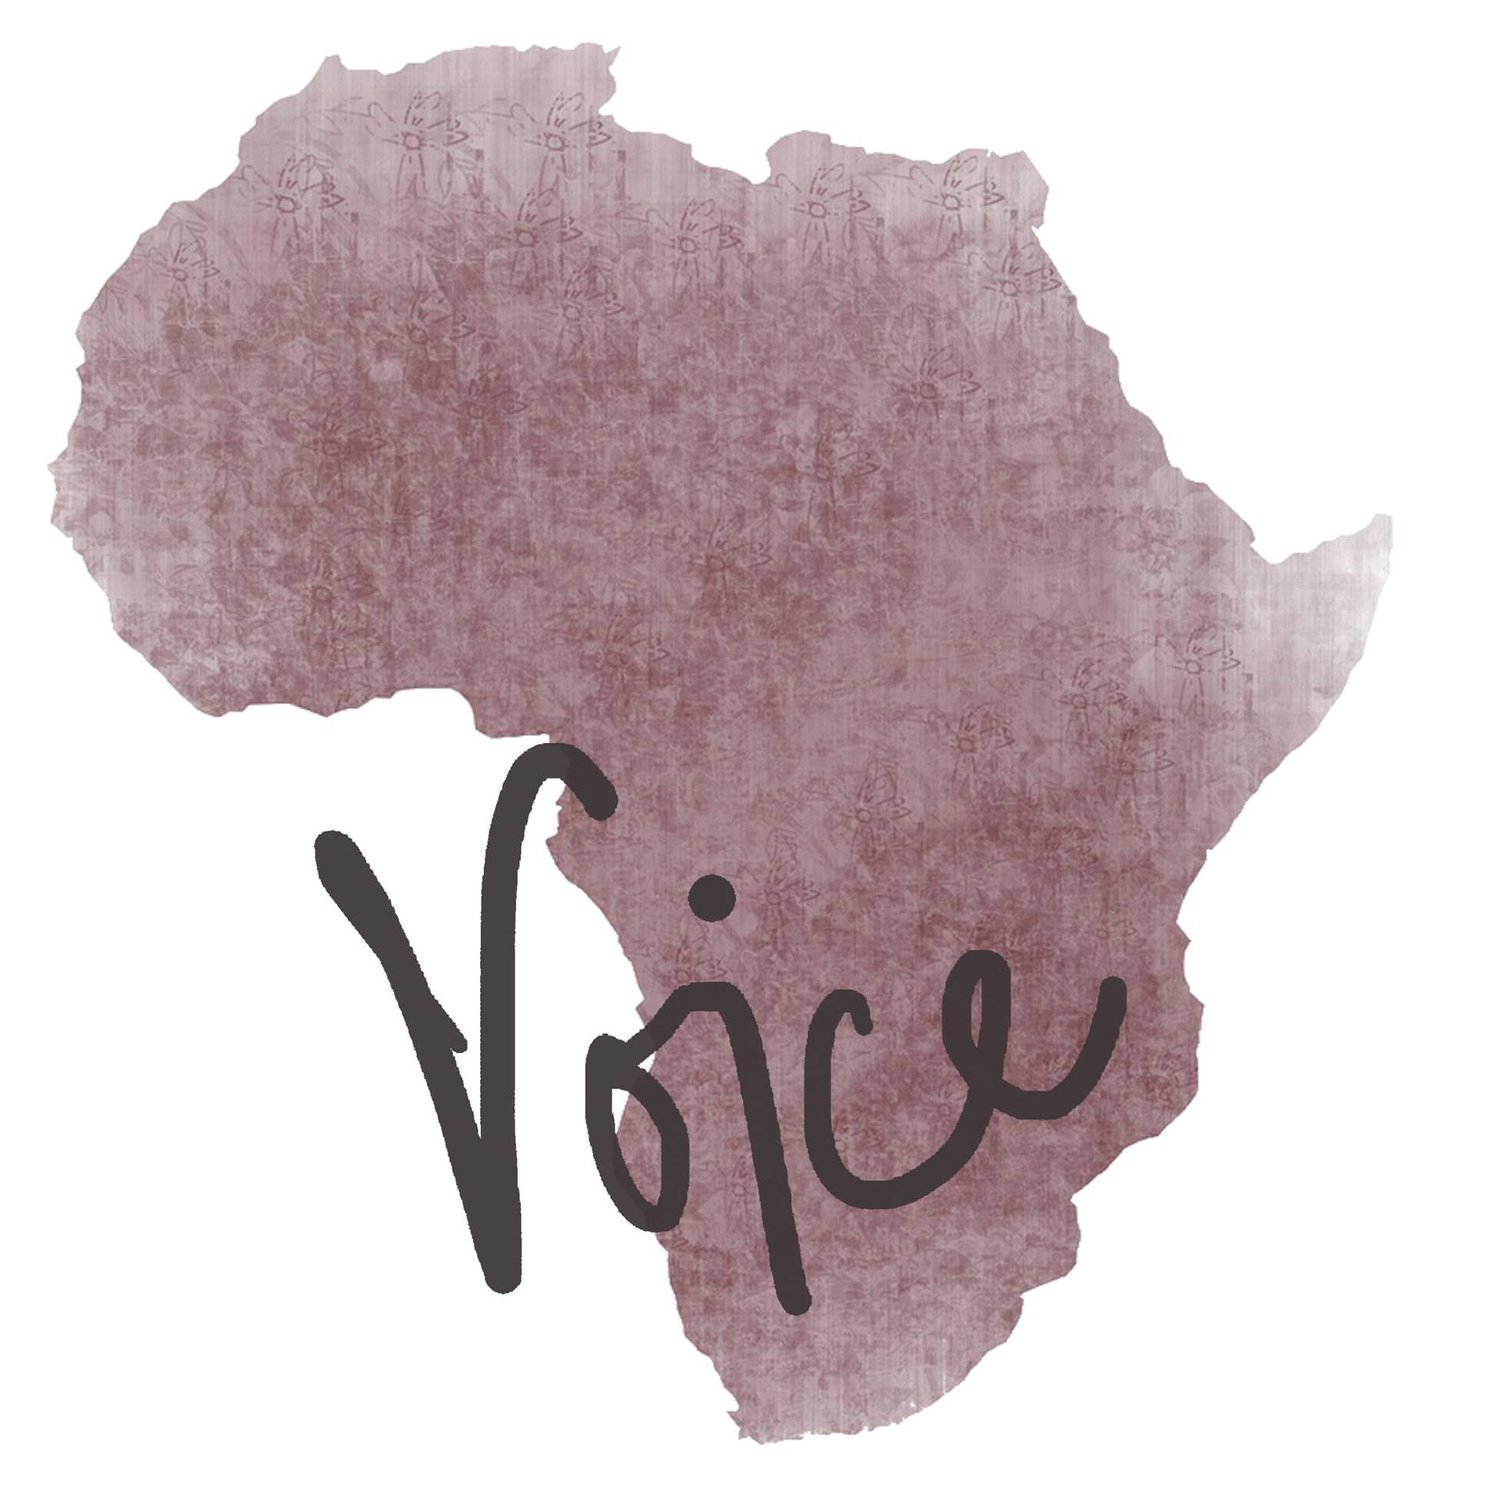 Voice International